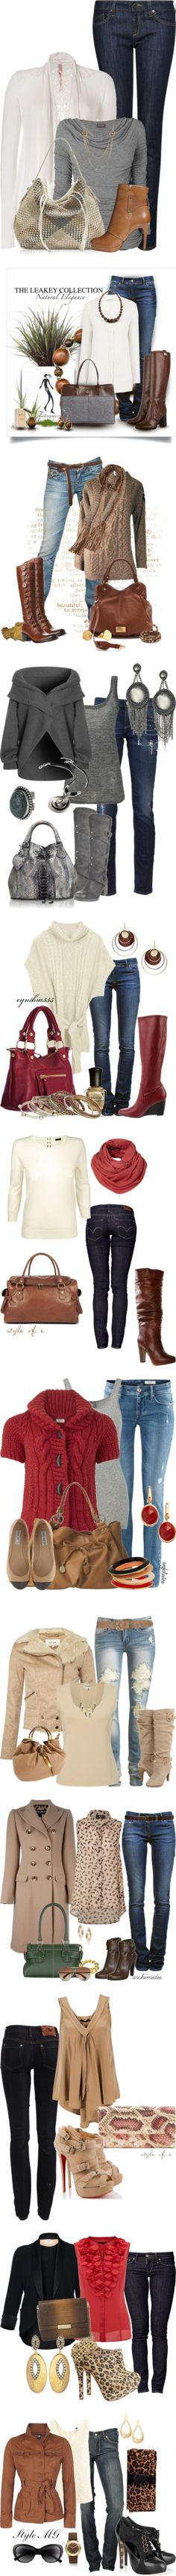 fabulous fall fashion ideas